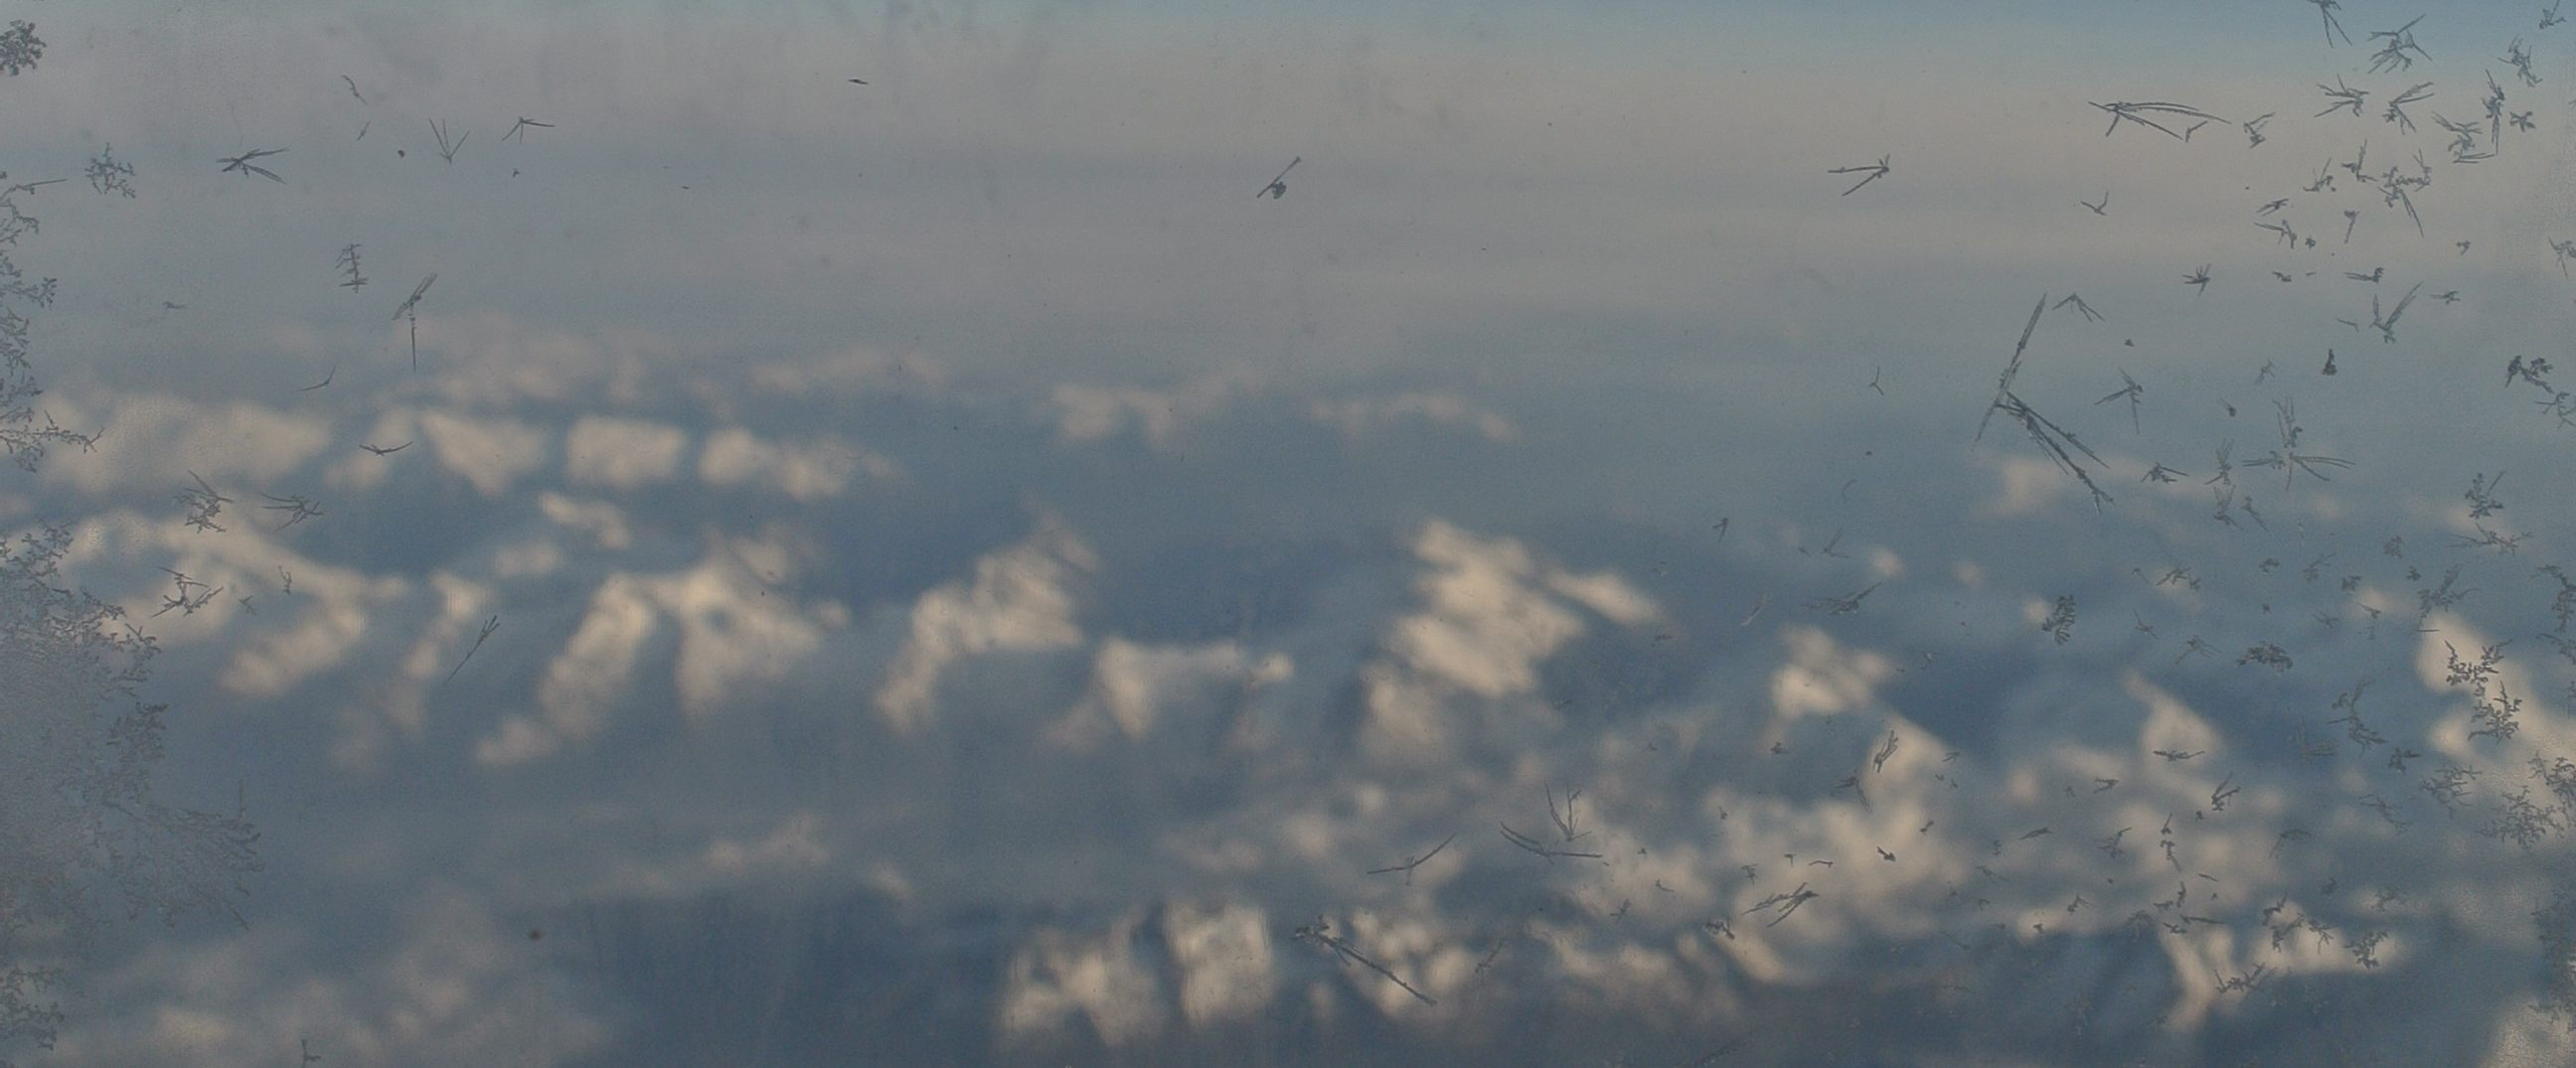 Frost accumulating on the outside of our plane window, above the Swiss Alps.